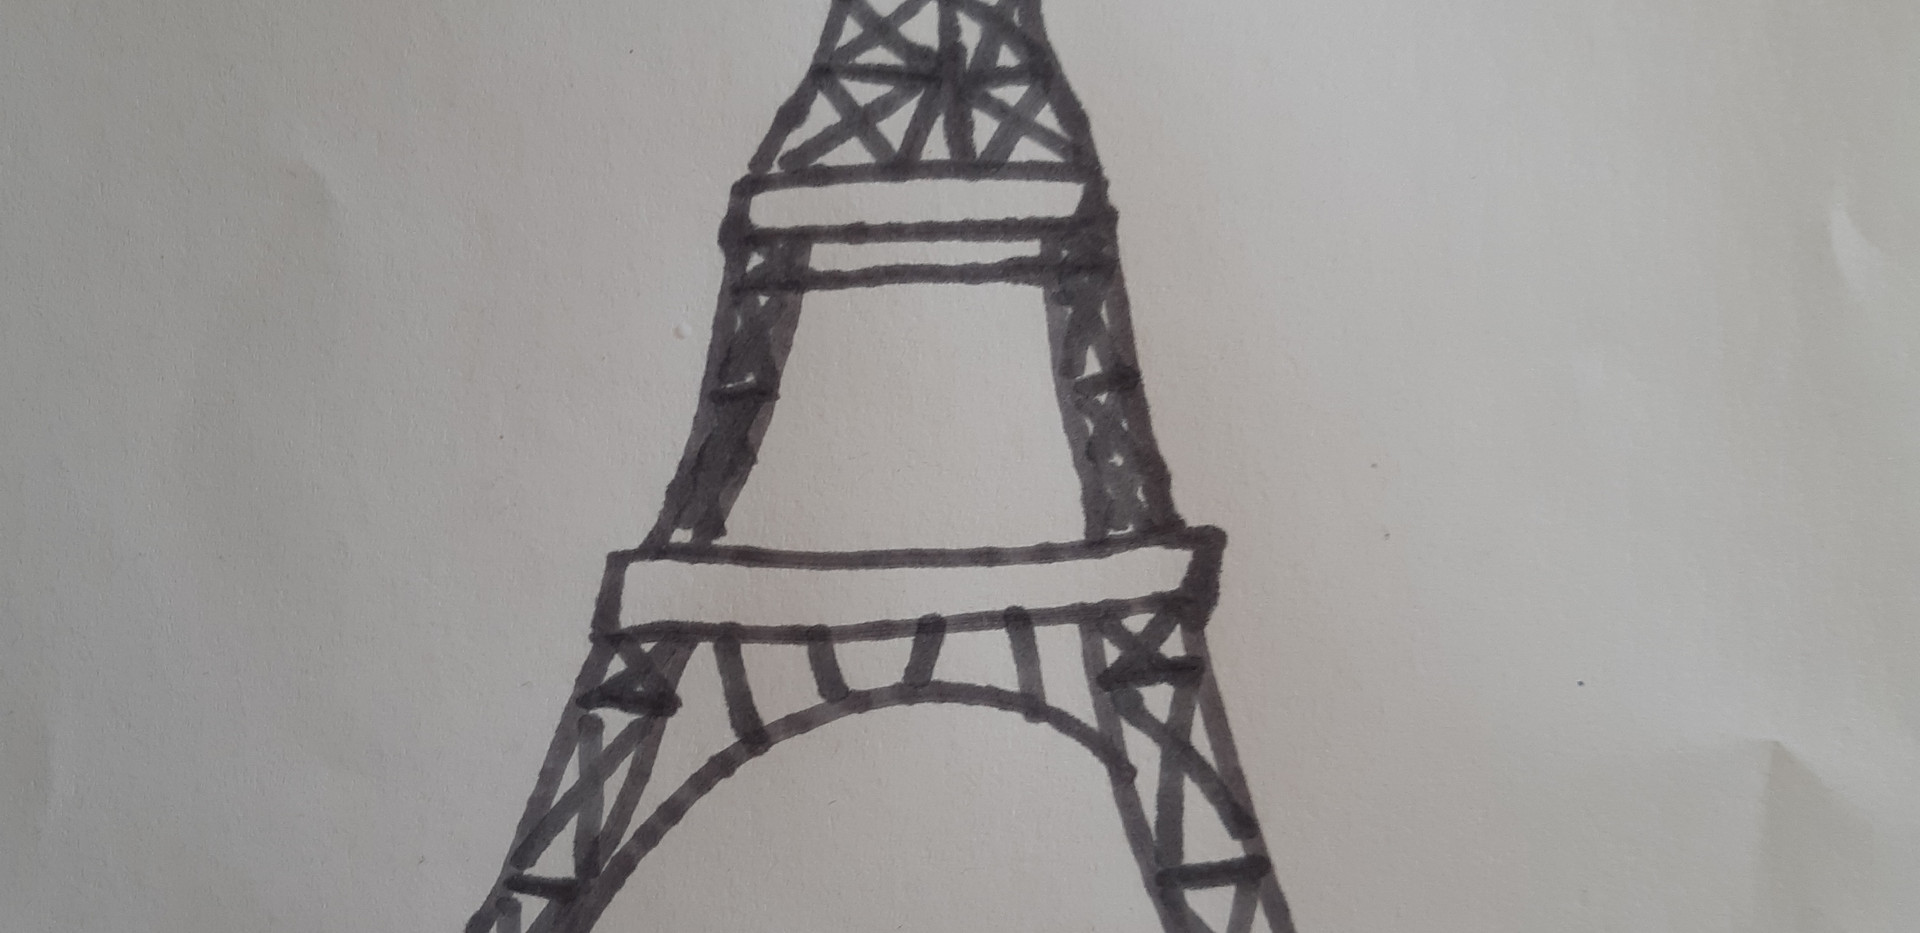 Alice Tour Eiffel.jpg